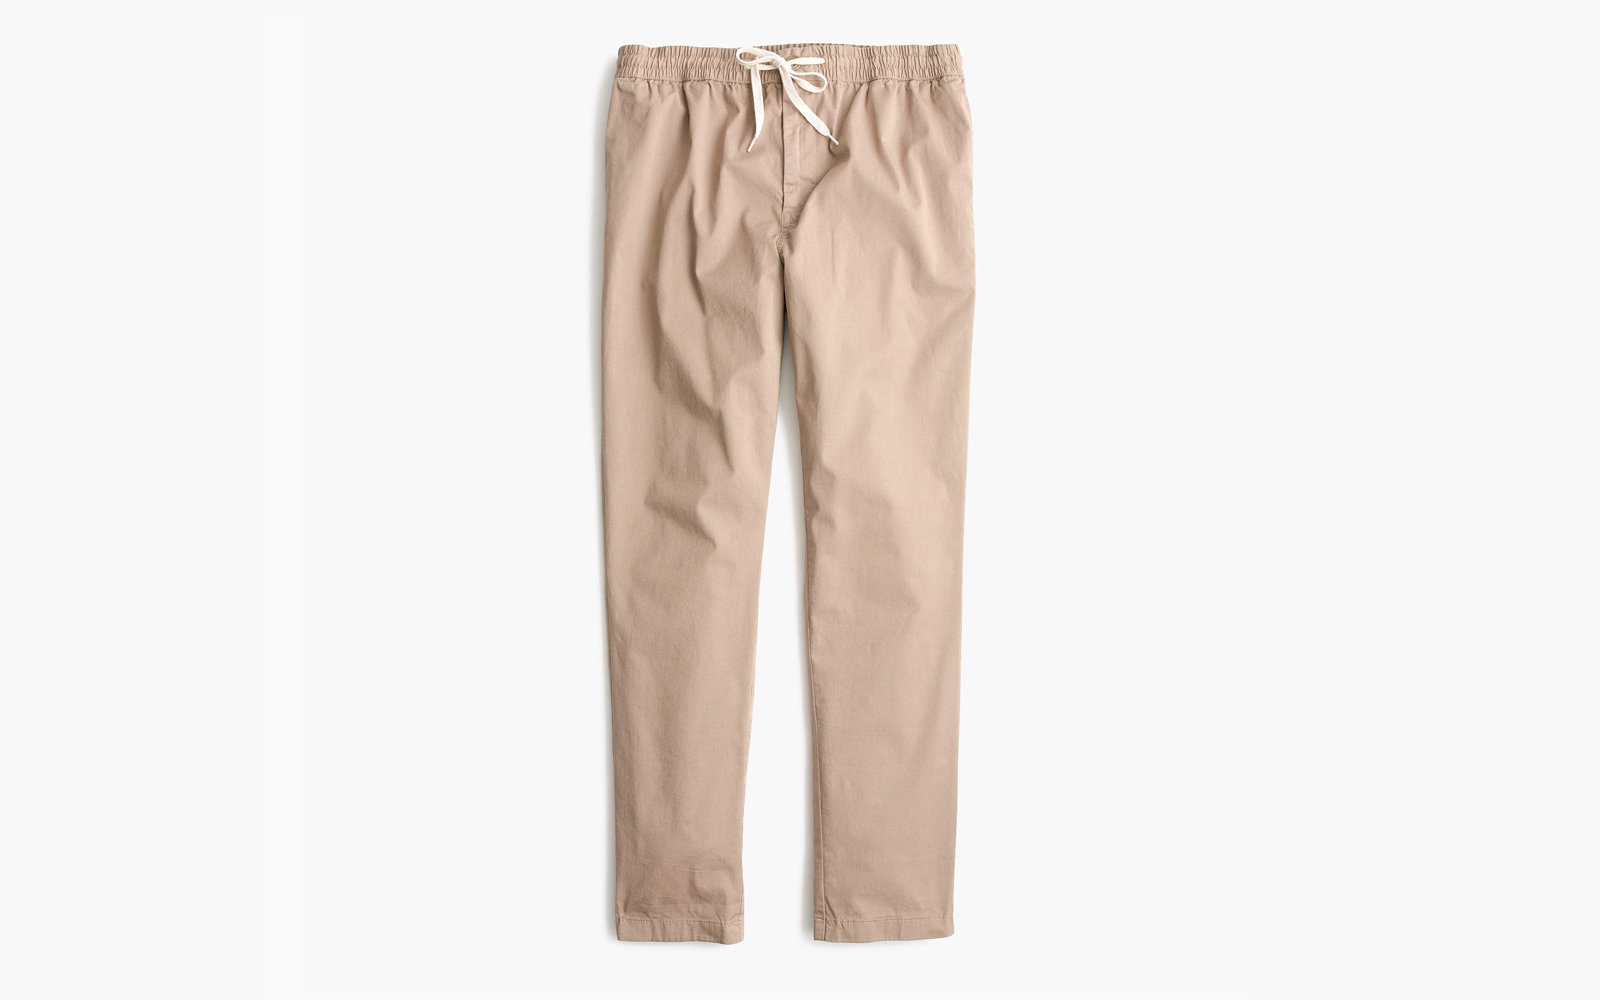 Men's Drawstring Pant in Chino